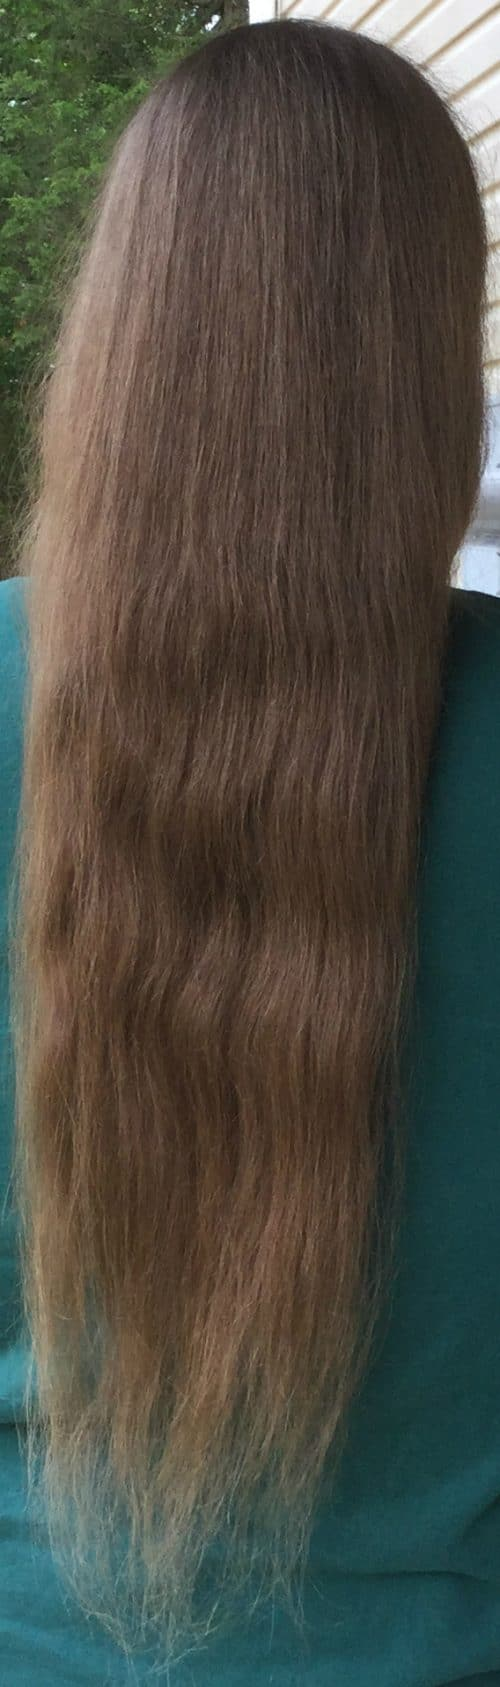 22″ virgin thick blond hair